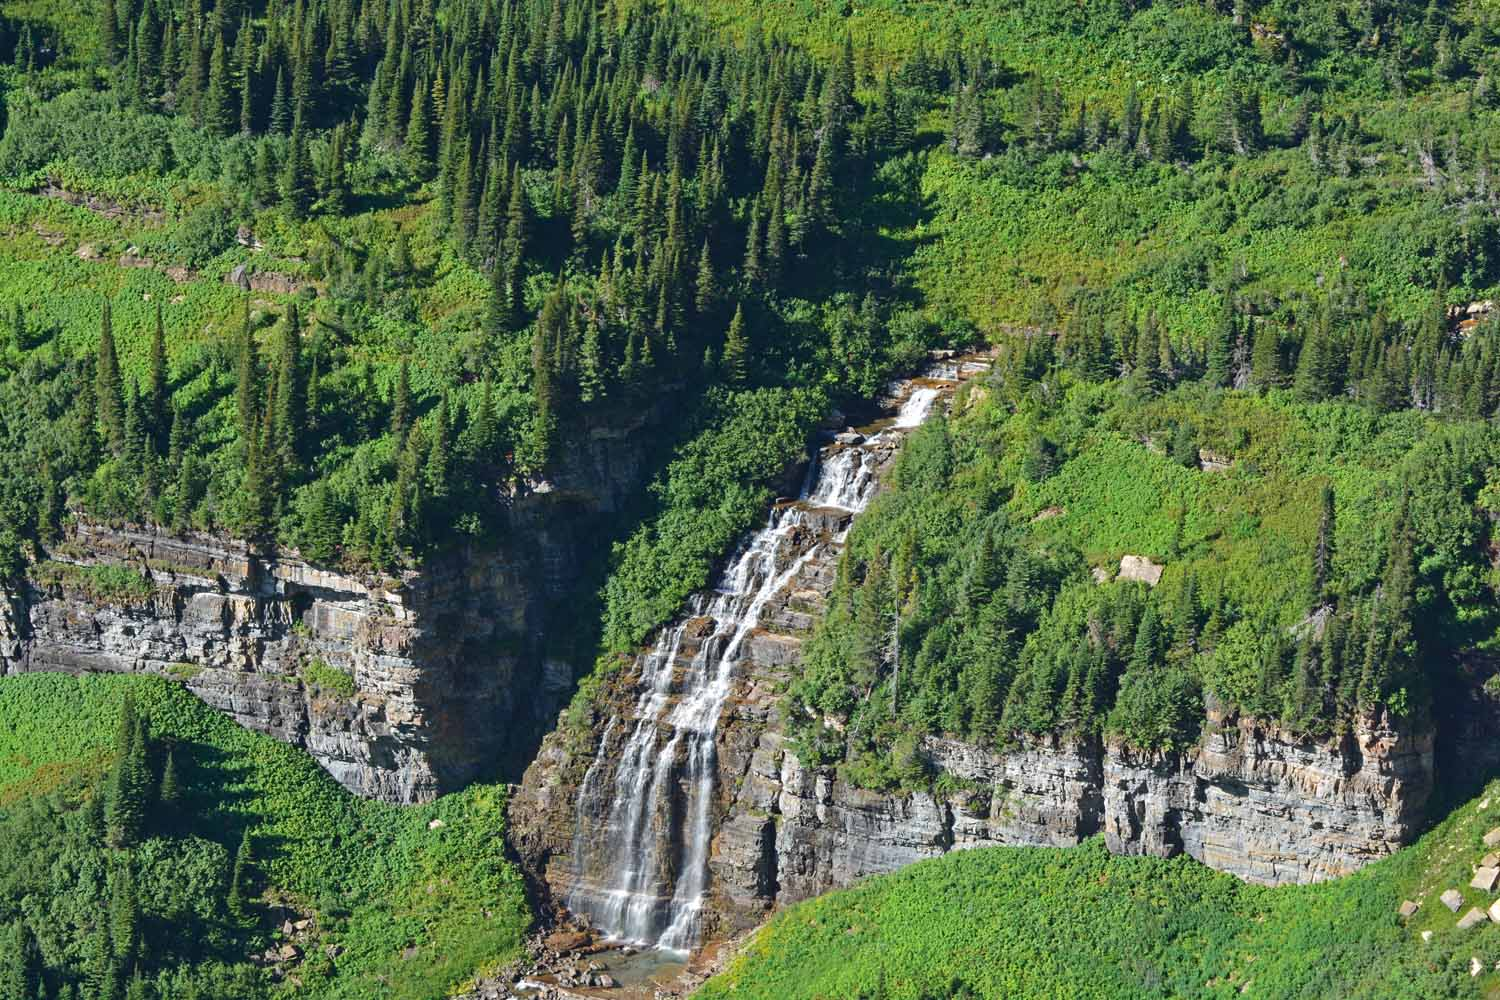 Glacier is very green and there are waterfalls everywhere.